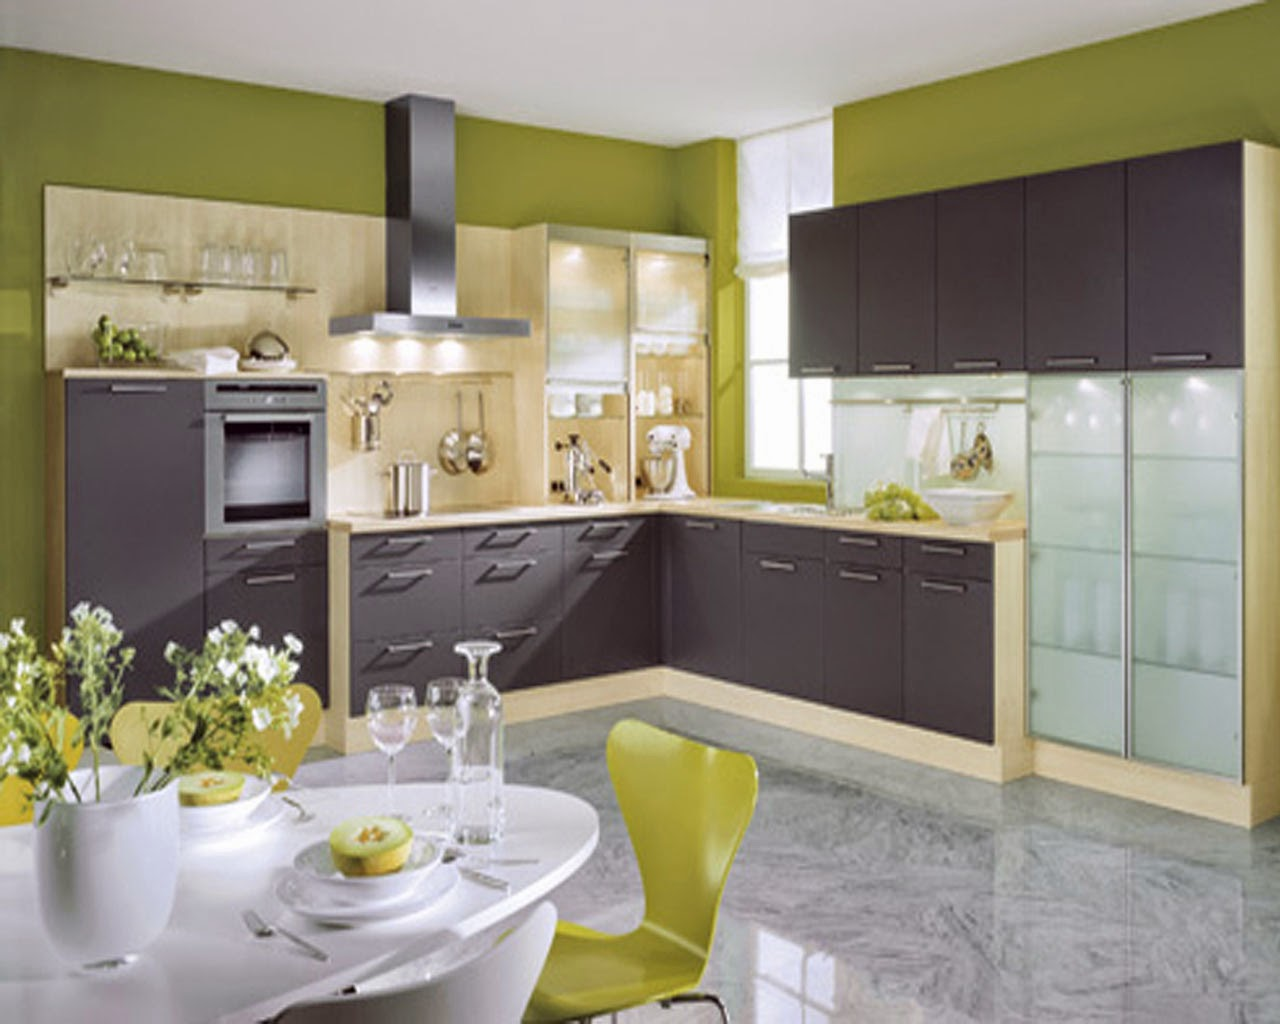 Kitchen designing ideas 2014 freshnist design for Kitchen decoration designs